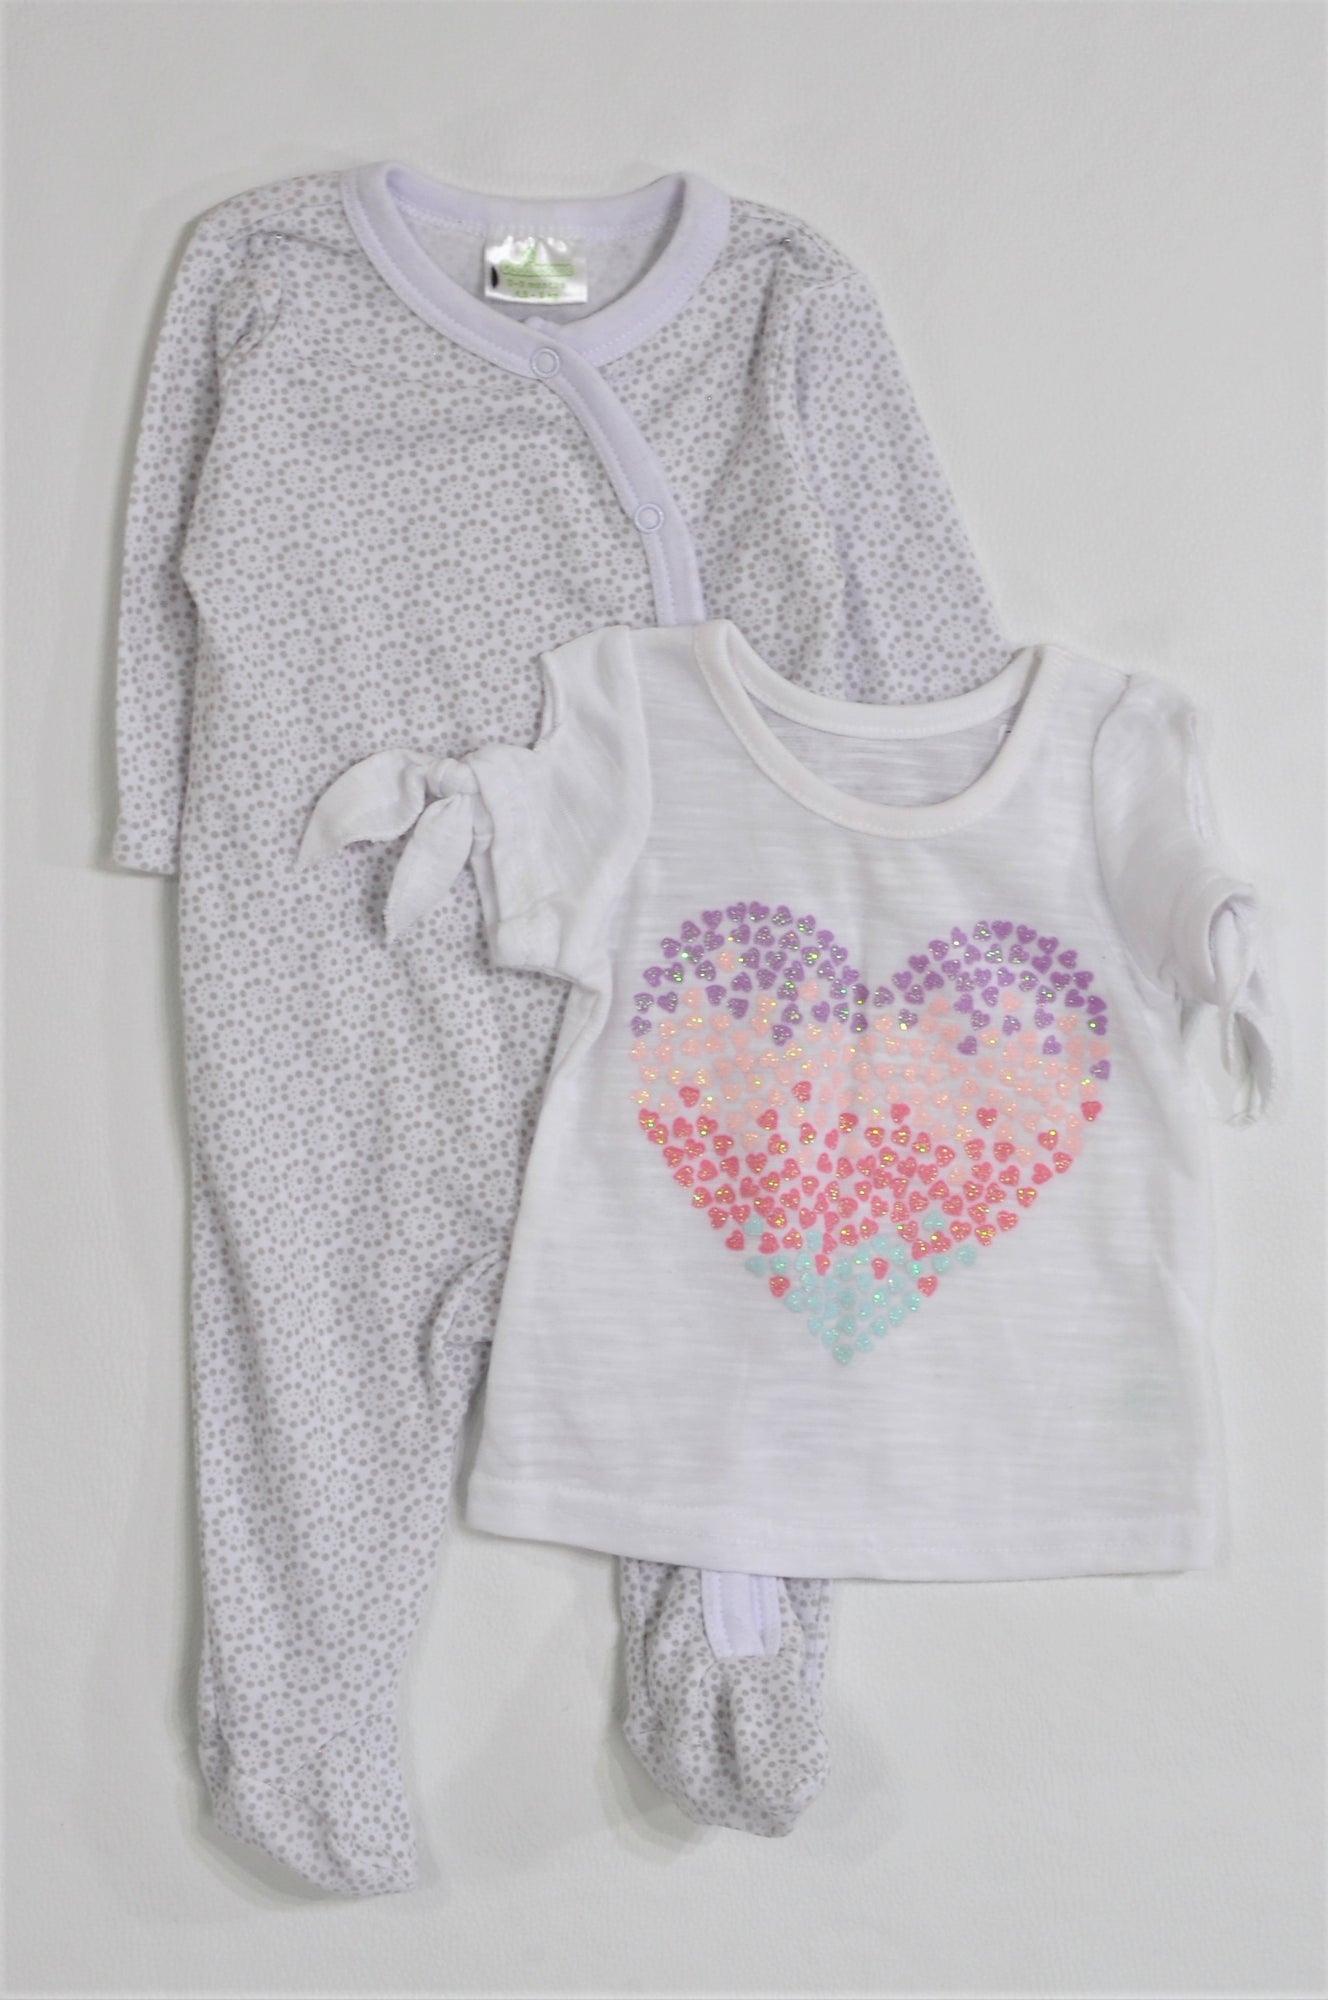 Pep Pack Of 2 White Heart T-Shirt And White & Grey Patterned Onesie Girls 0-3 months